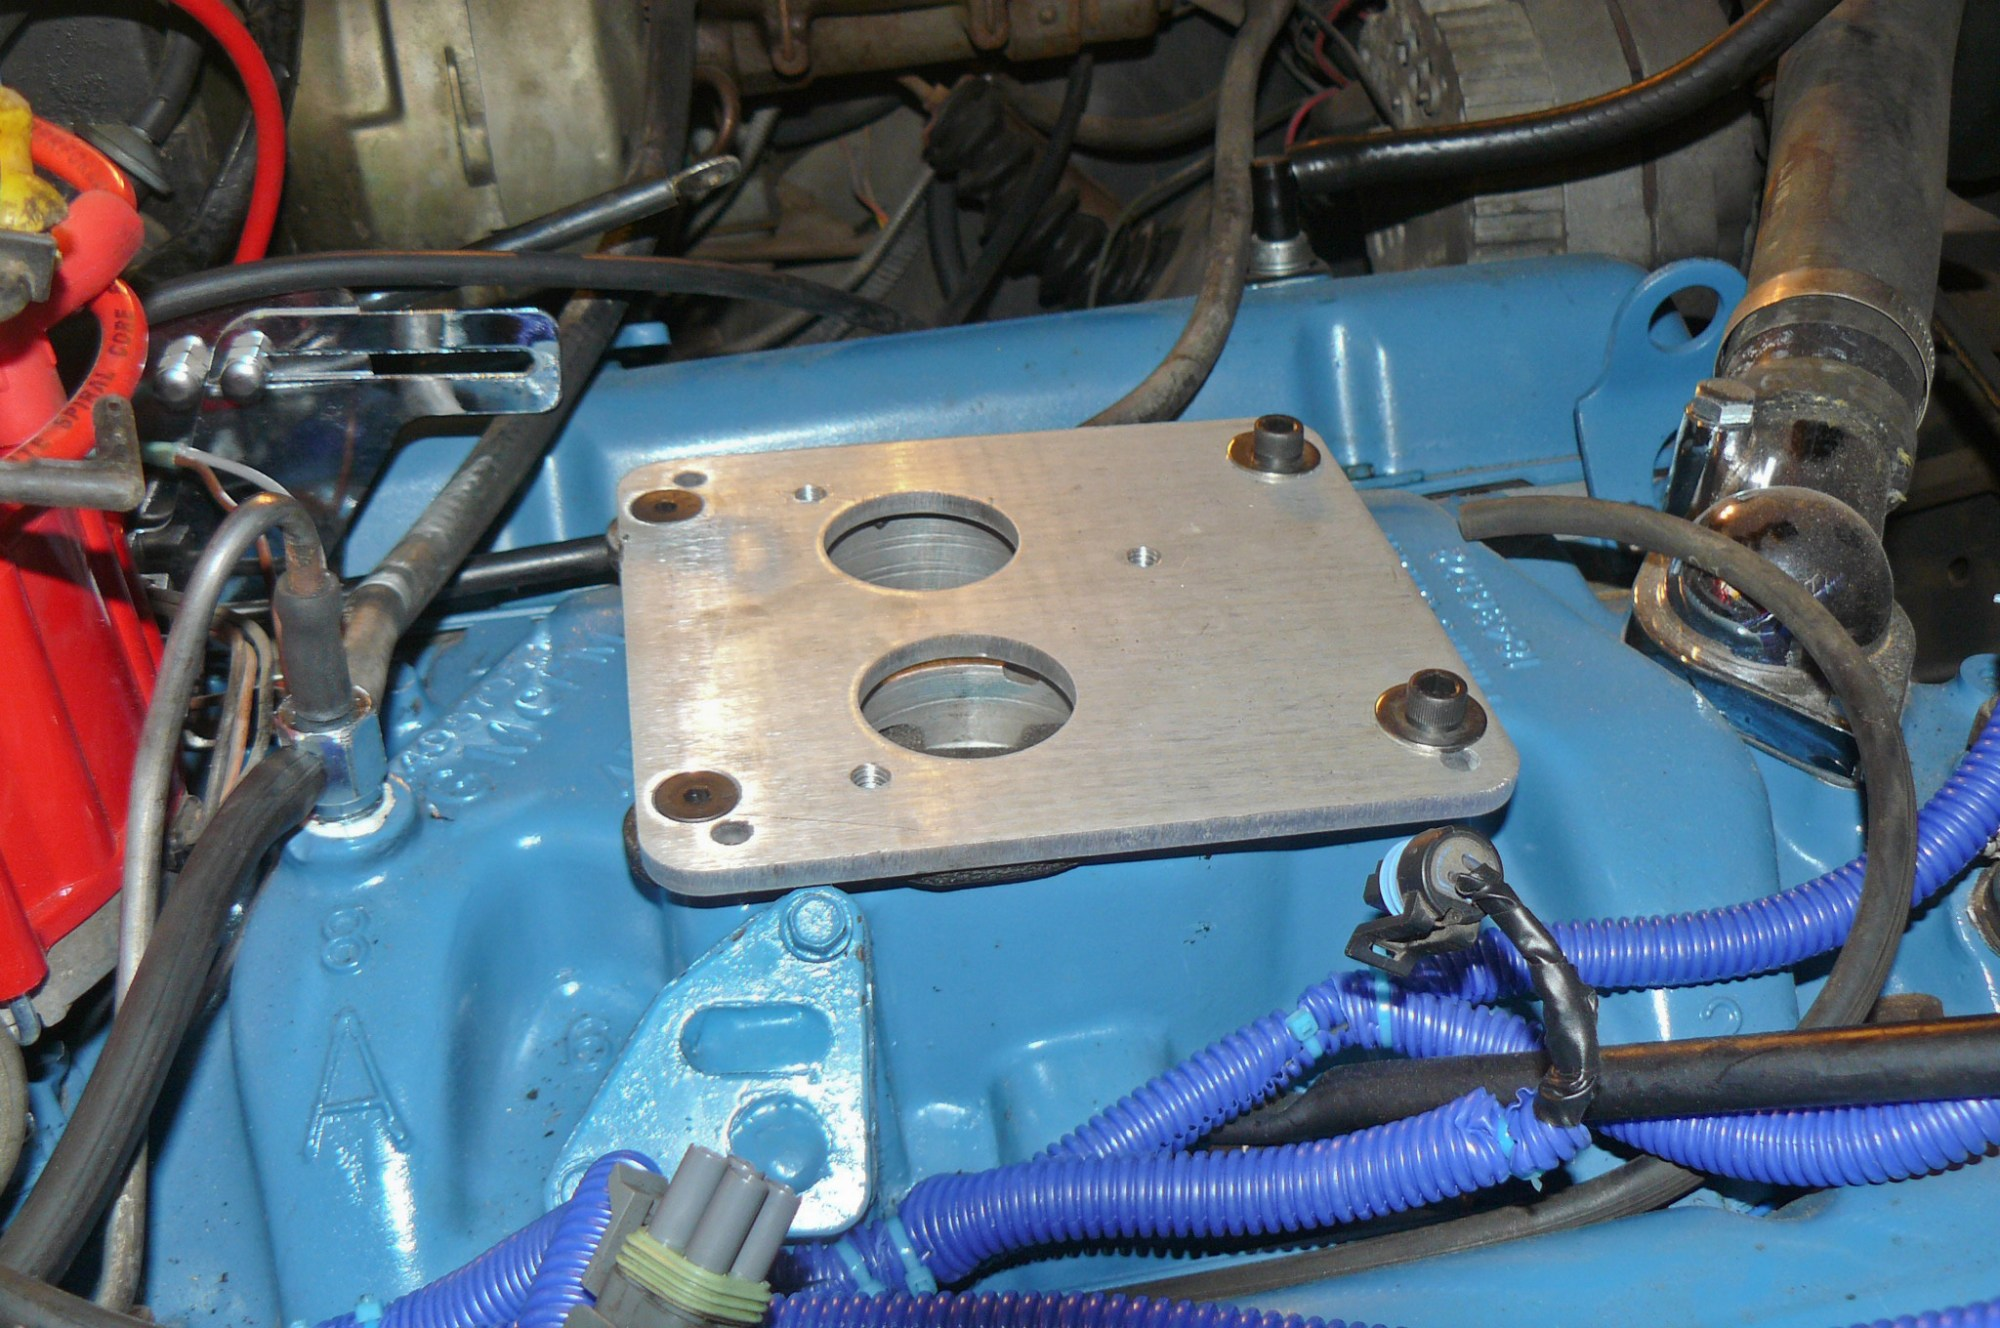 hight resolution of an adapter plate is required to mount the two barrel type throttle body injection unit to the four barrel manifold and that s a requirement whether you re